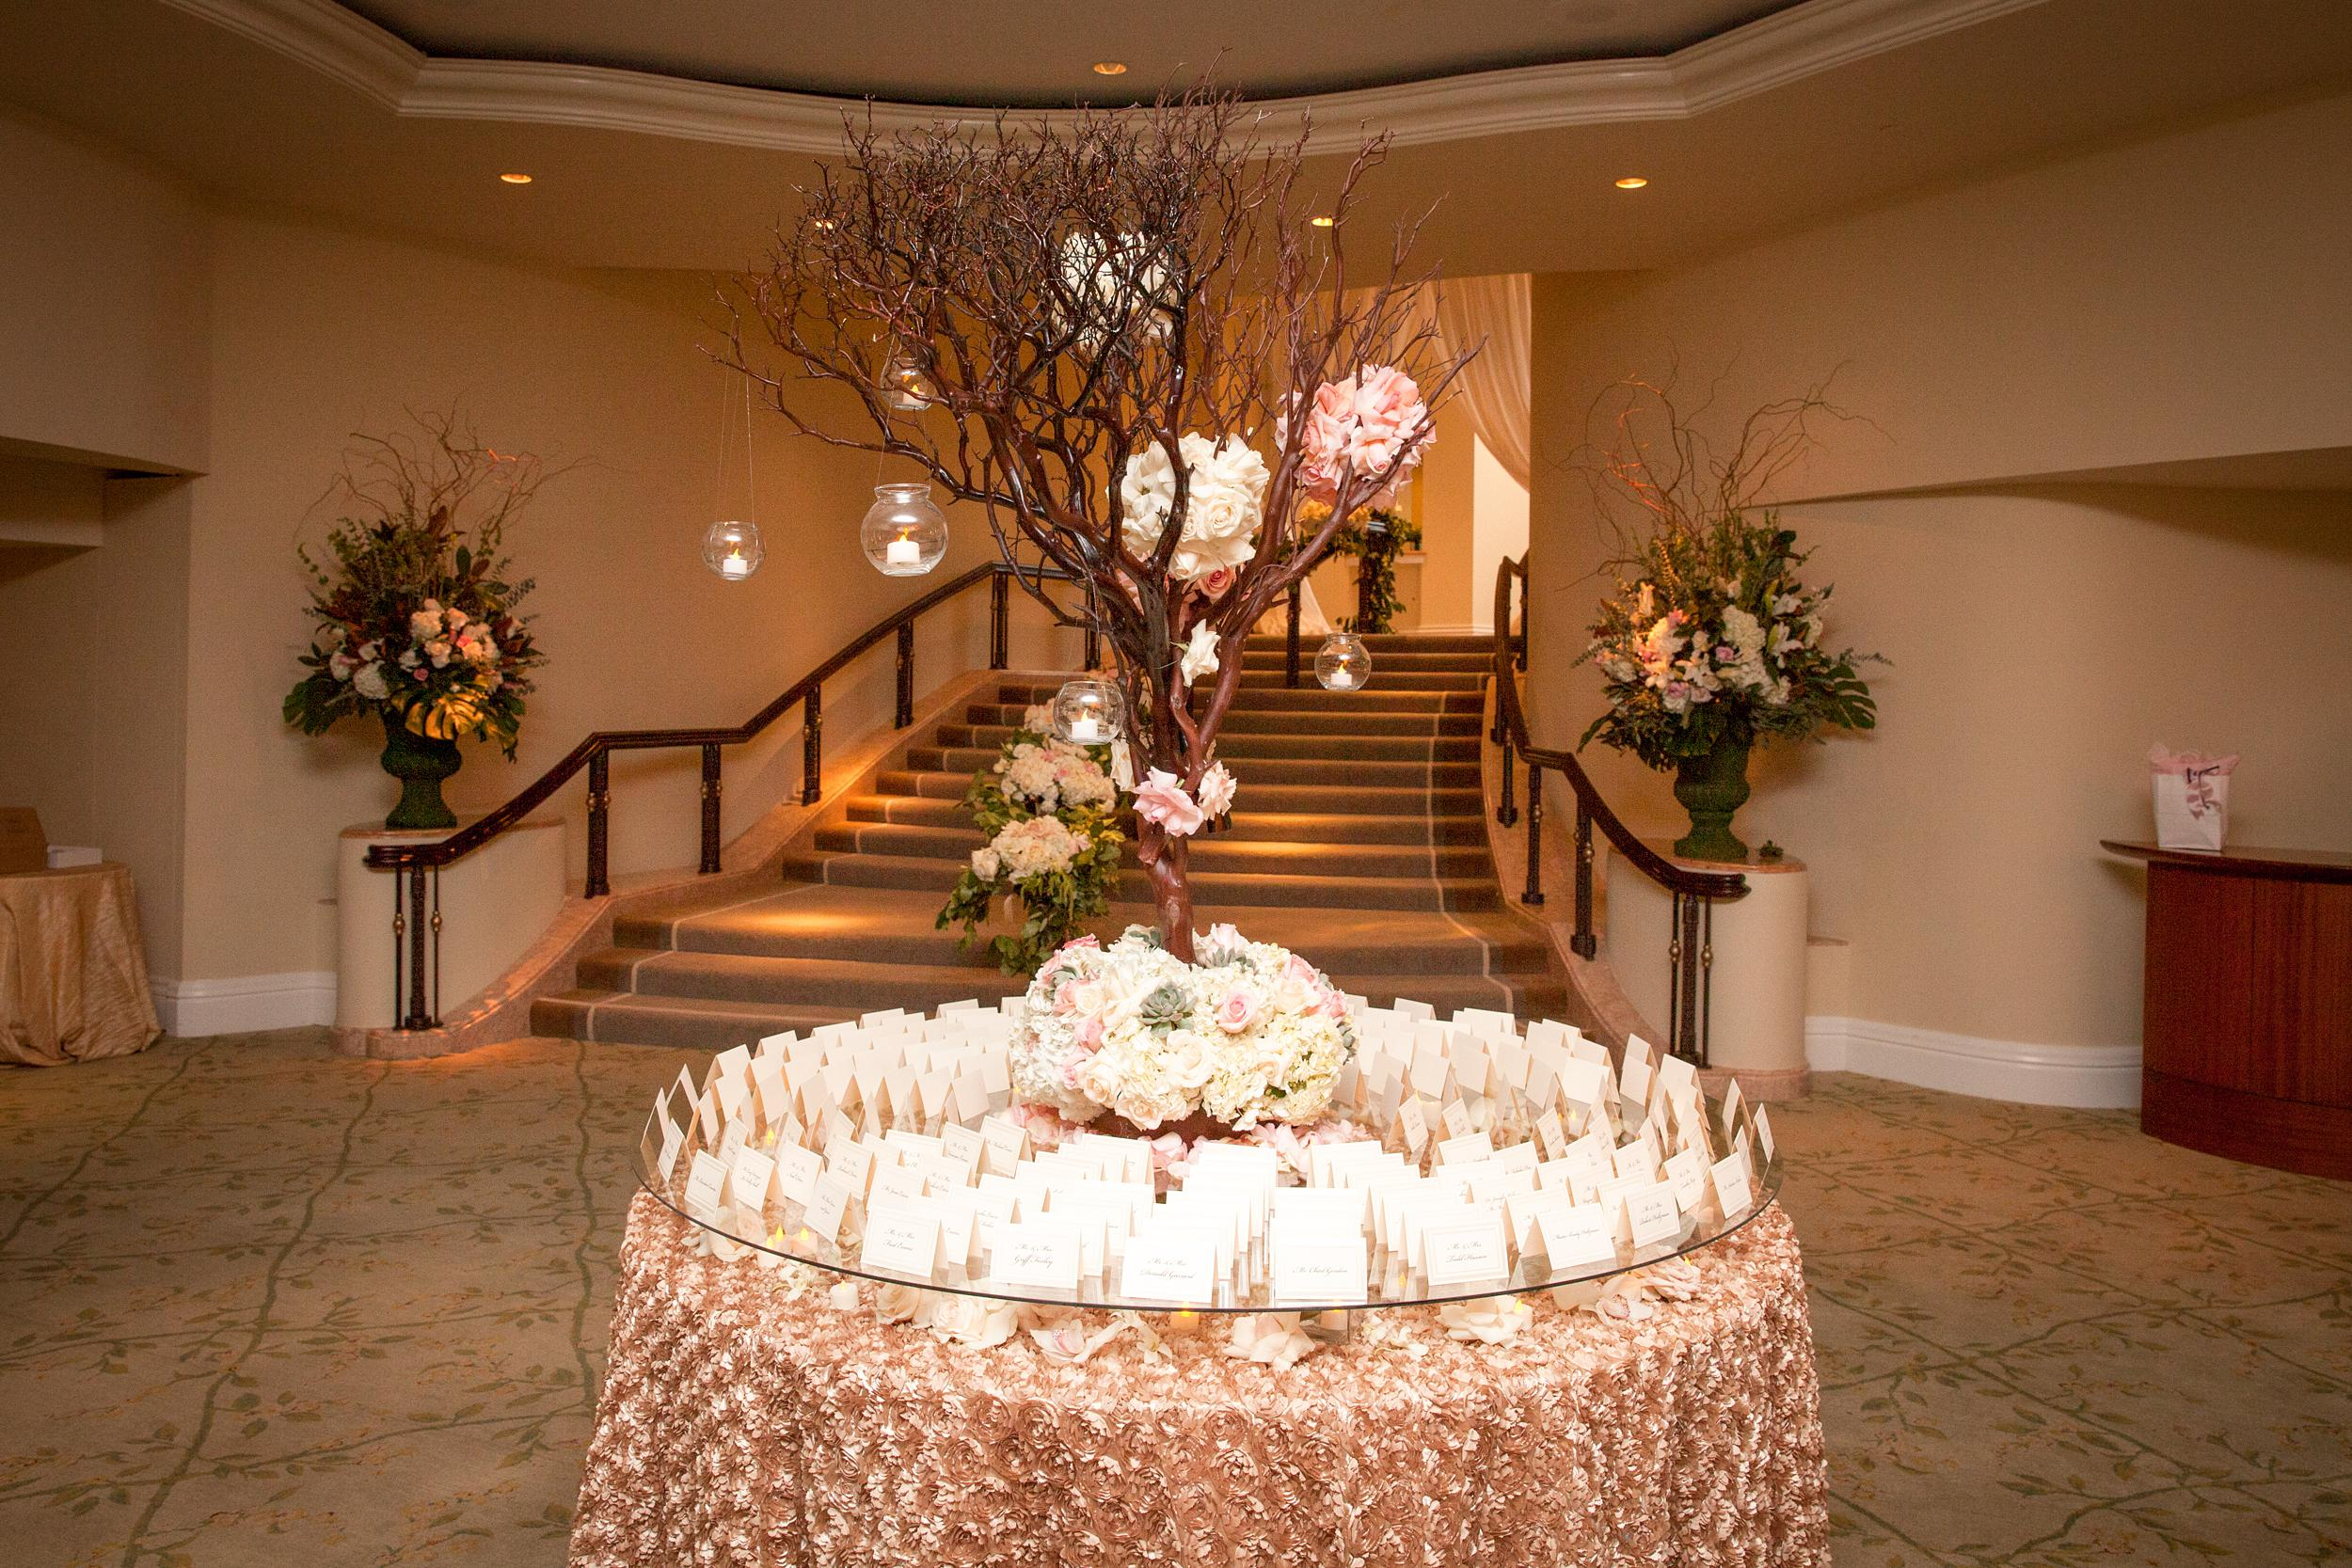 beverly-hills-hotel-wedding-HB-17.jpg